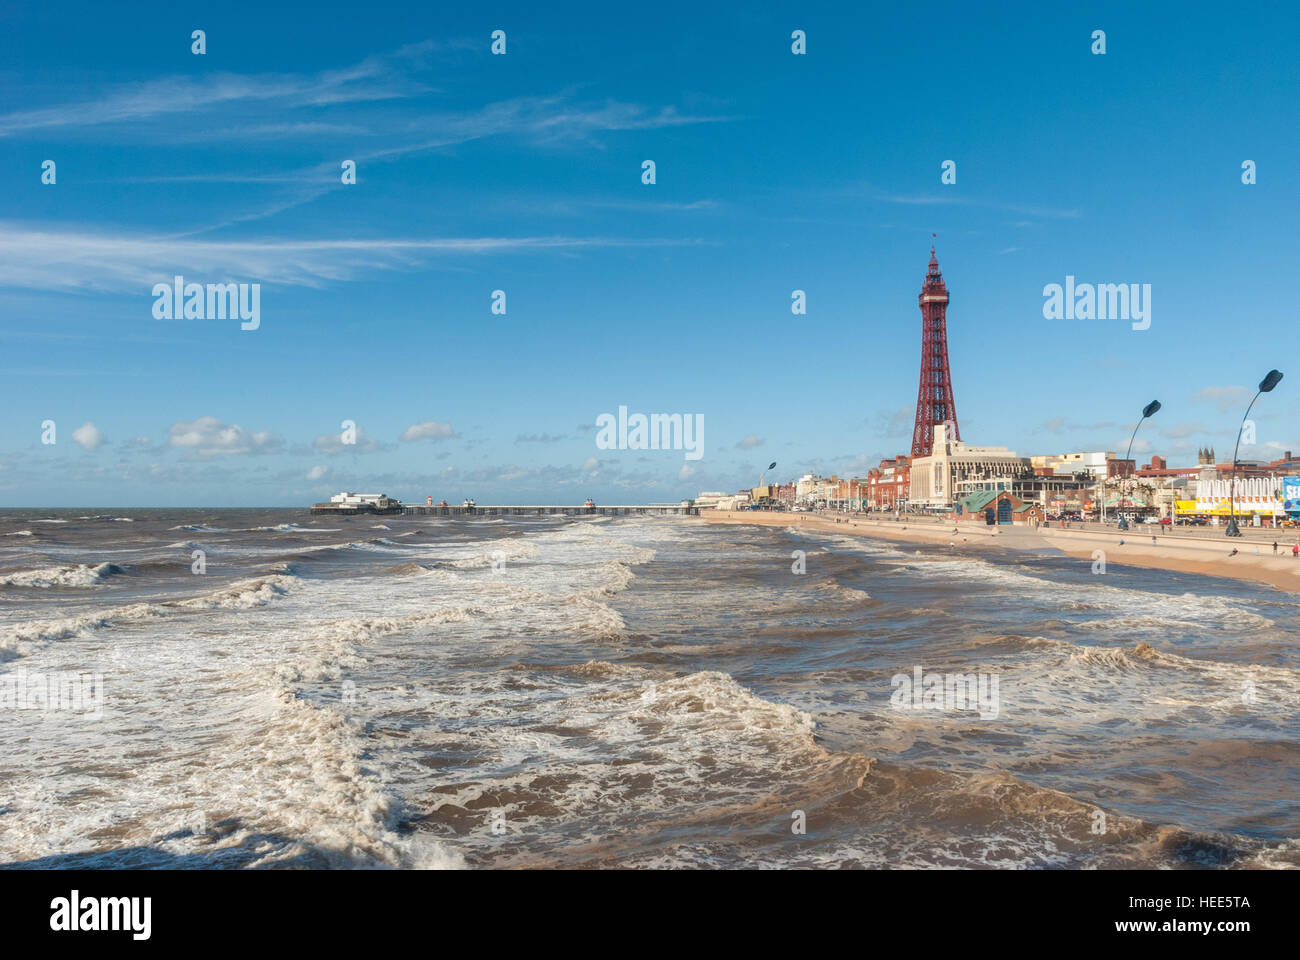 Blackpool Tower and beach in Blackpool England - Stock Image